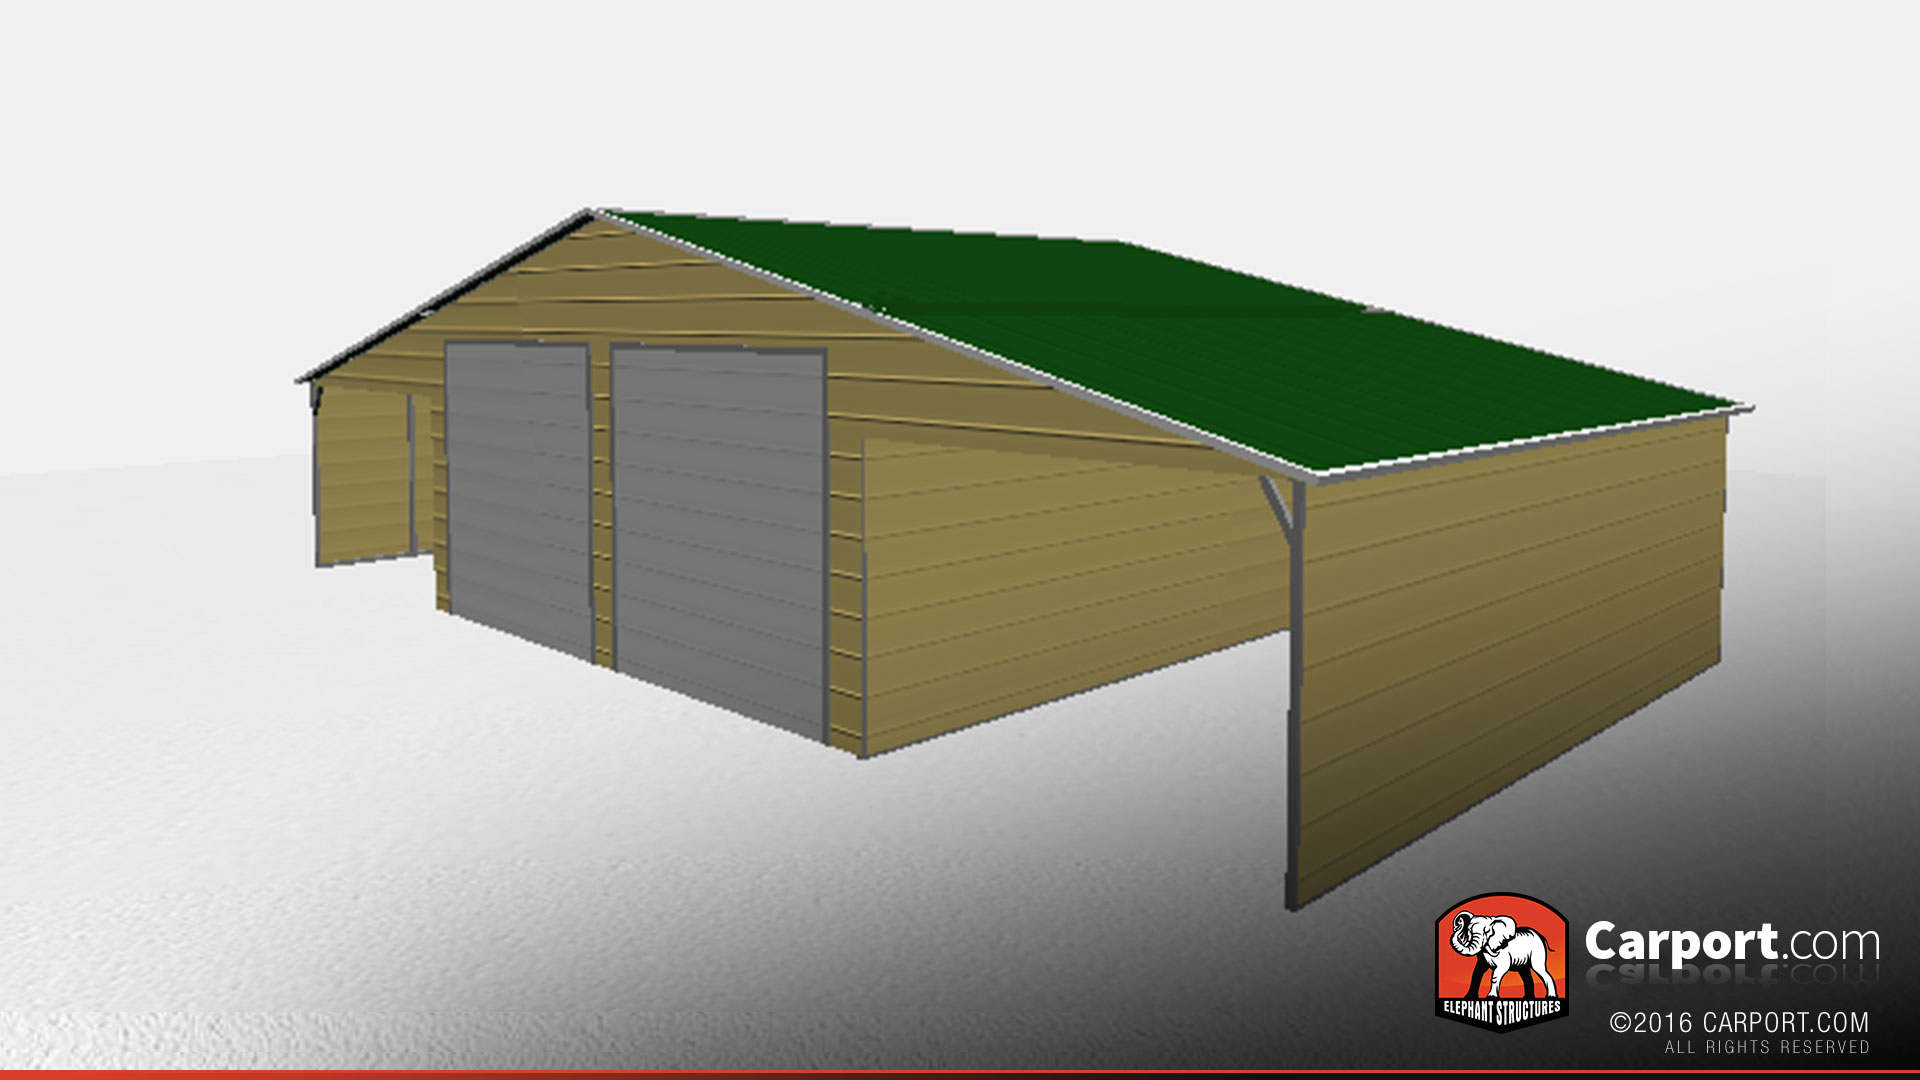 46 X 26 Vertical Roof Storage Building With Lean Tos Storage Buildings